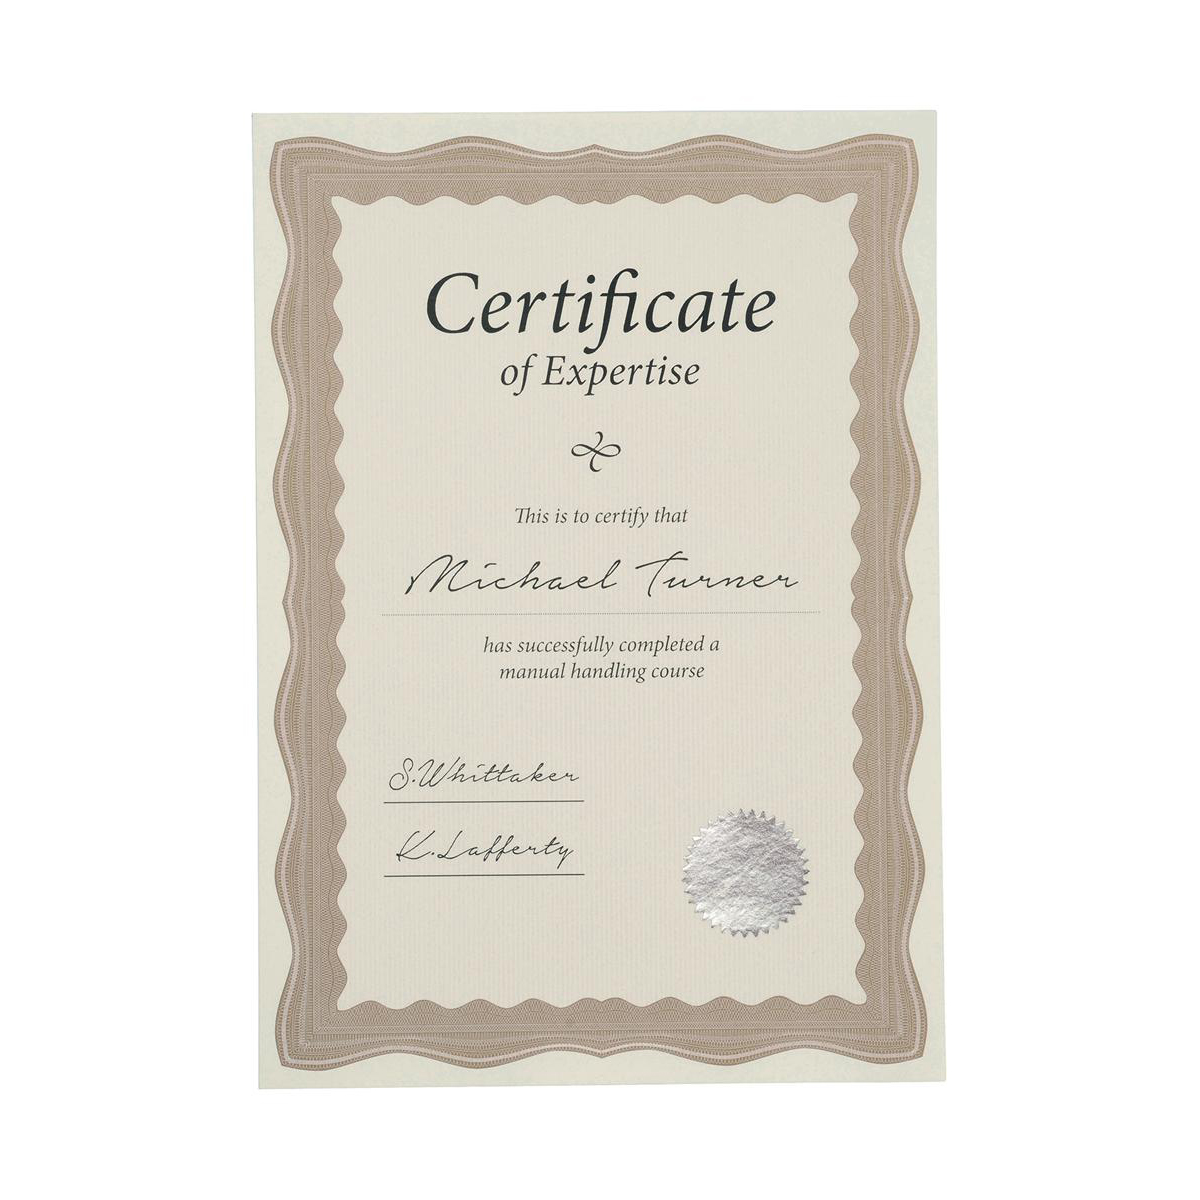 Certificate Papers with Foil Seals 90gsm A4 Bronze Wave 30 Sheets 3 for 2 Jul-Sept 19